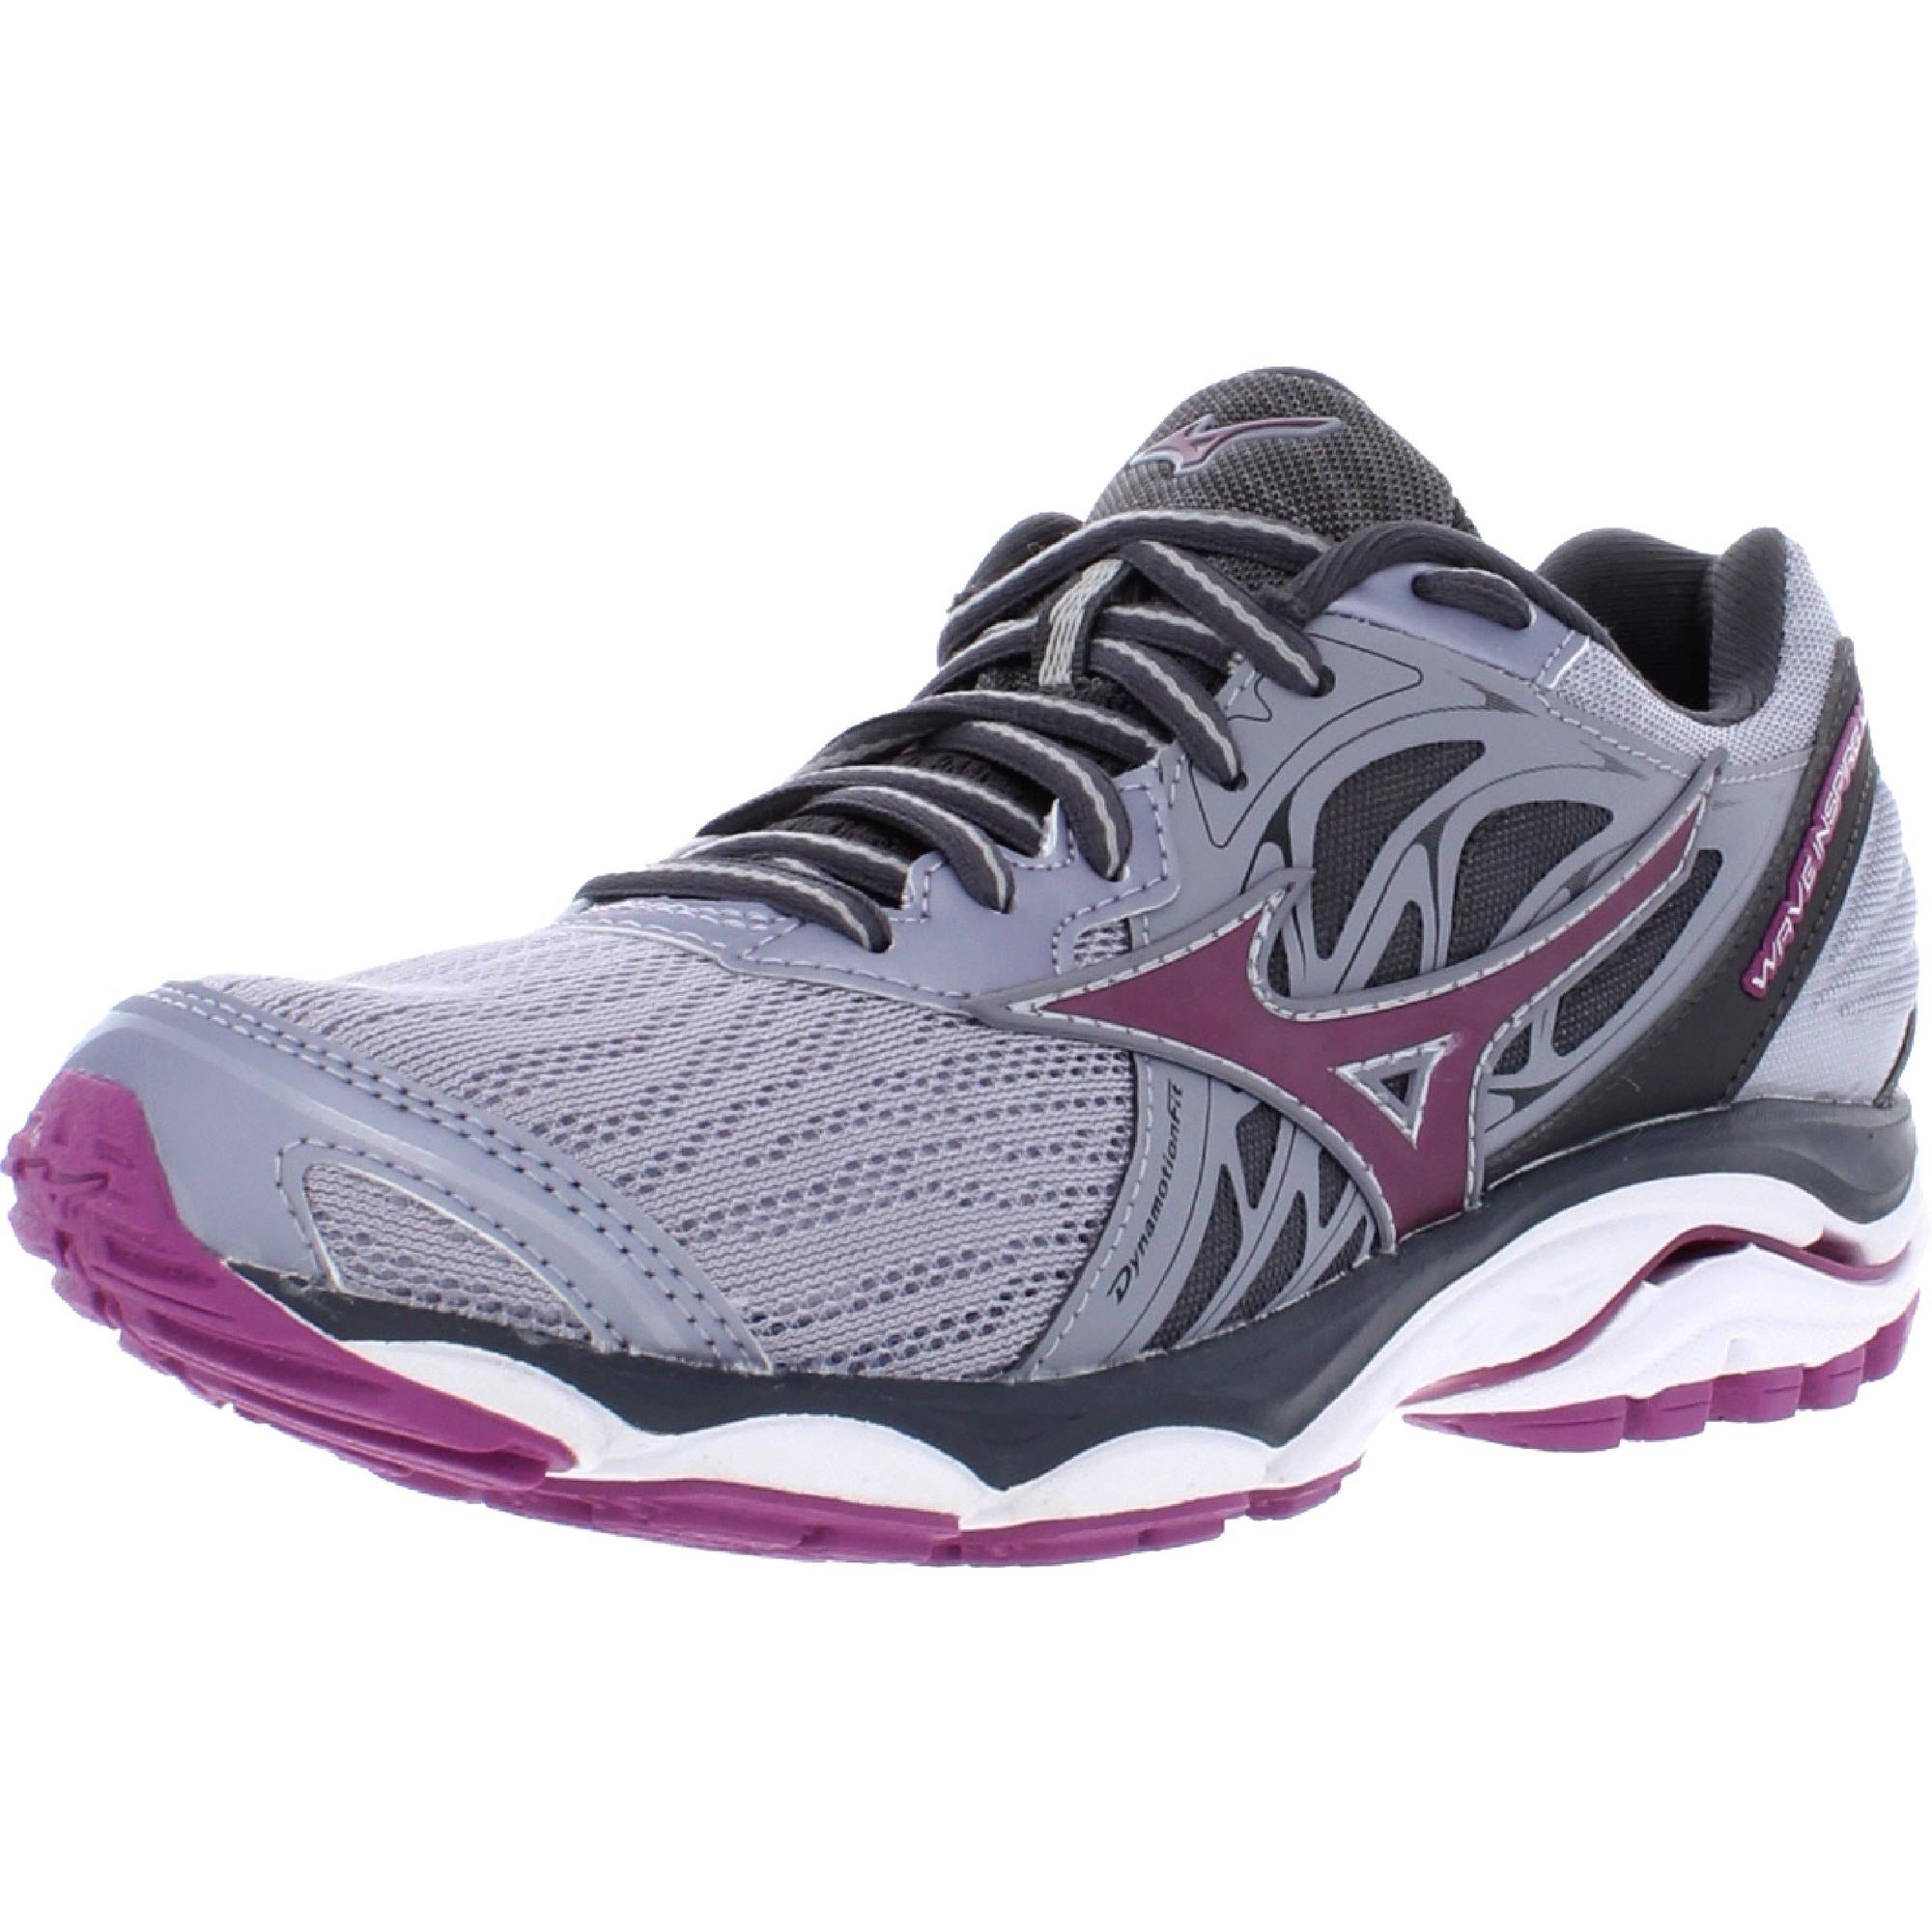 mizuno womens running shoes size 8.5 in usa latest edition download